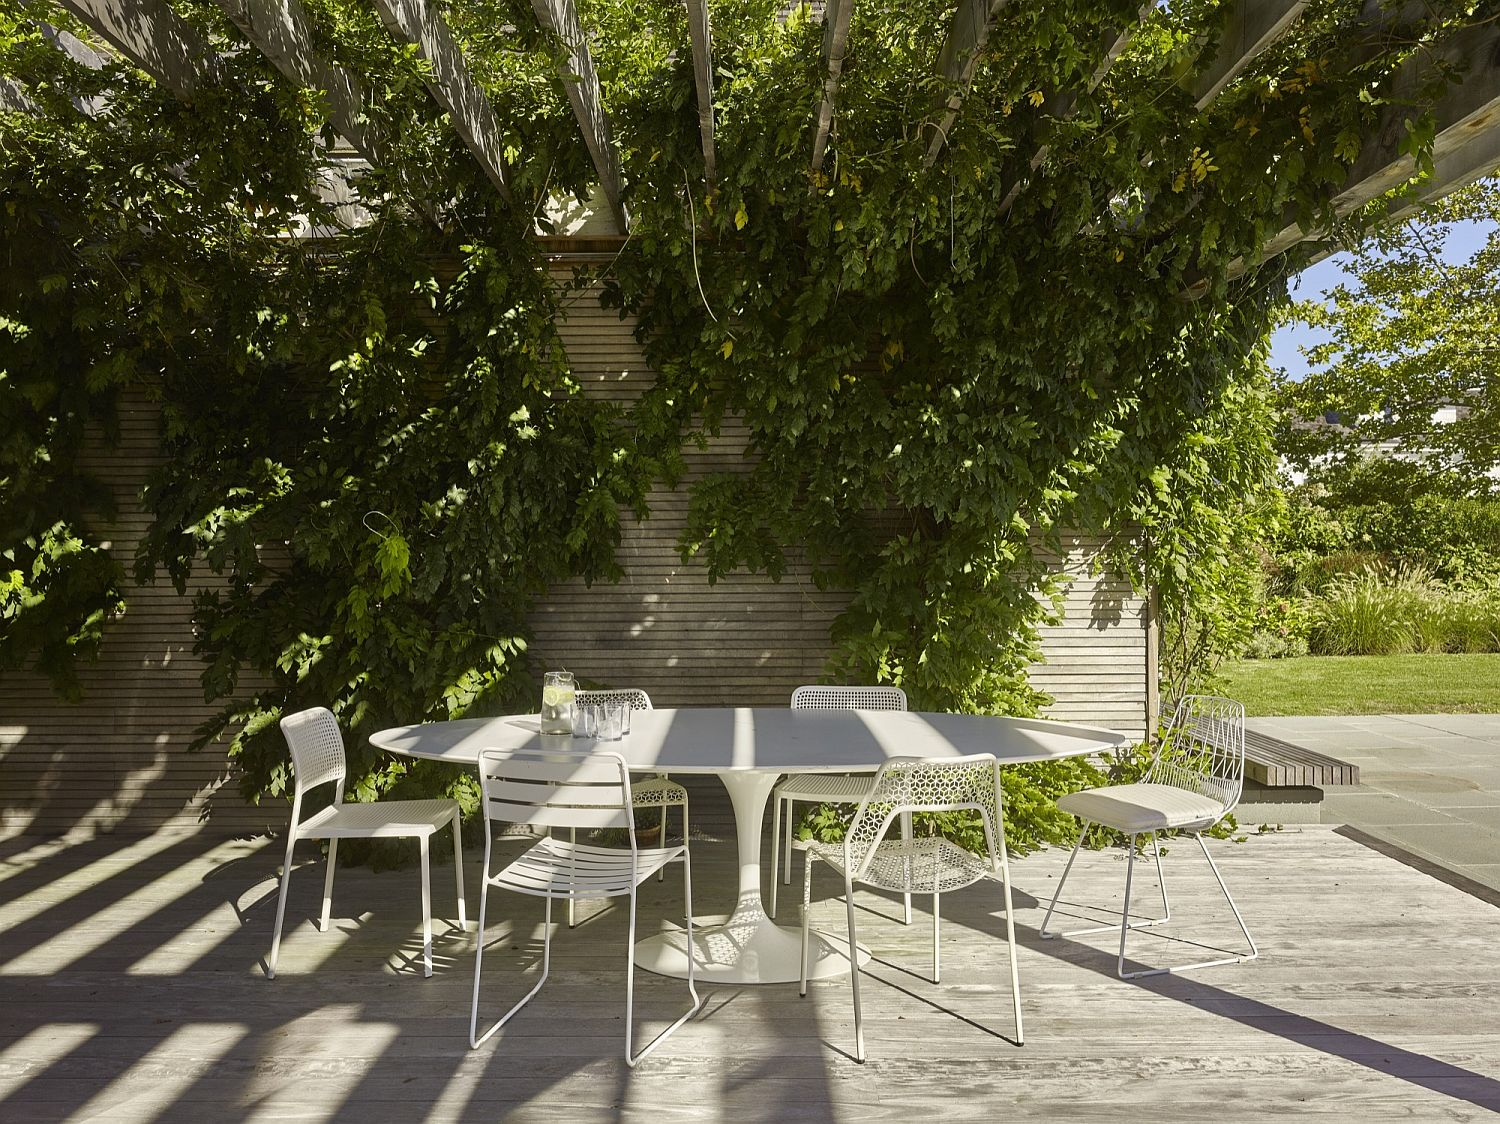 Lovely outdoor dining area with greenery above offering ample shade